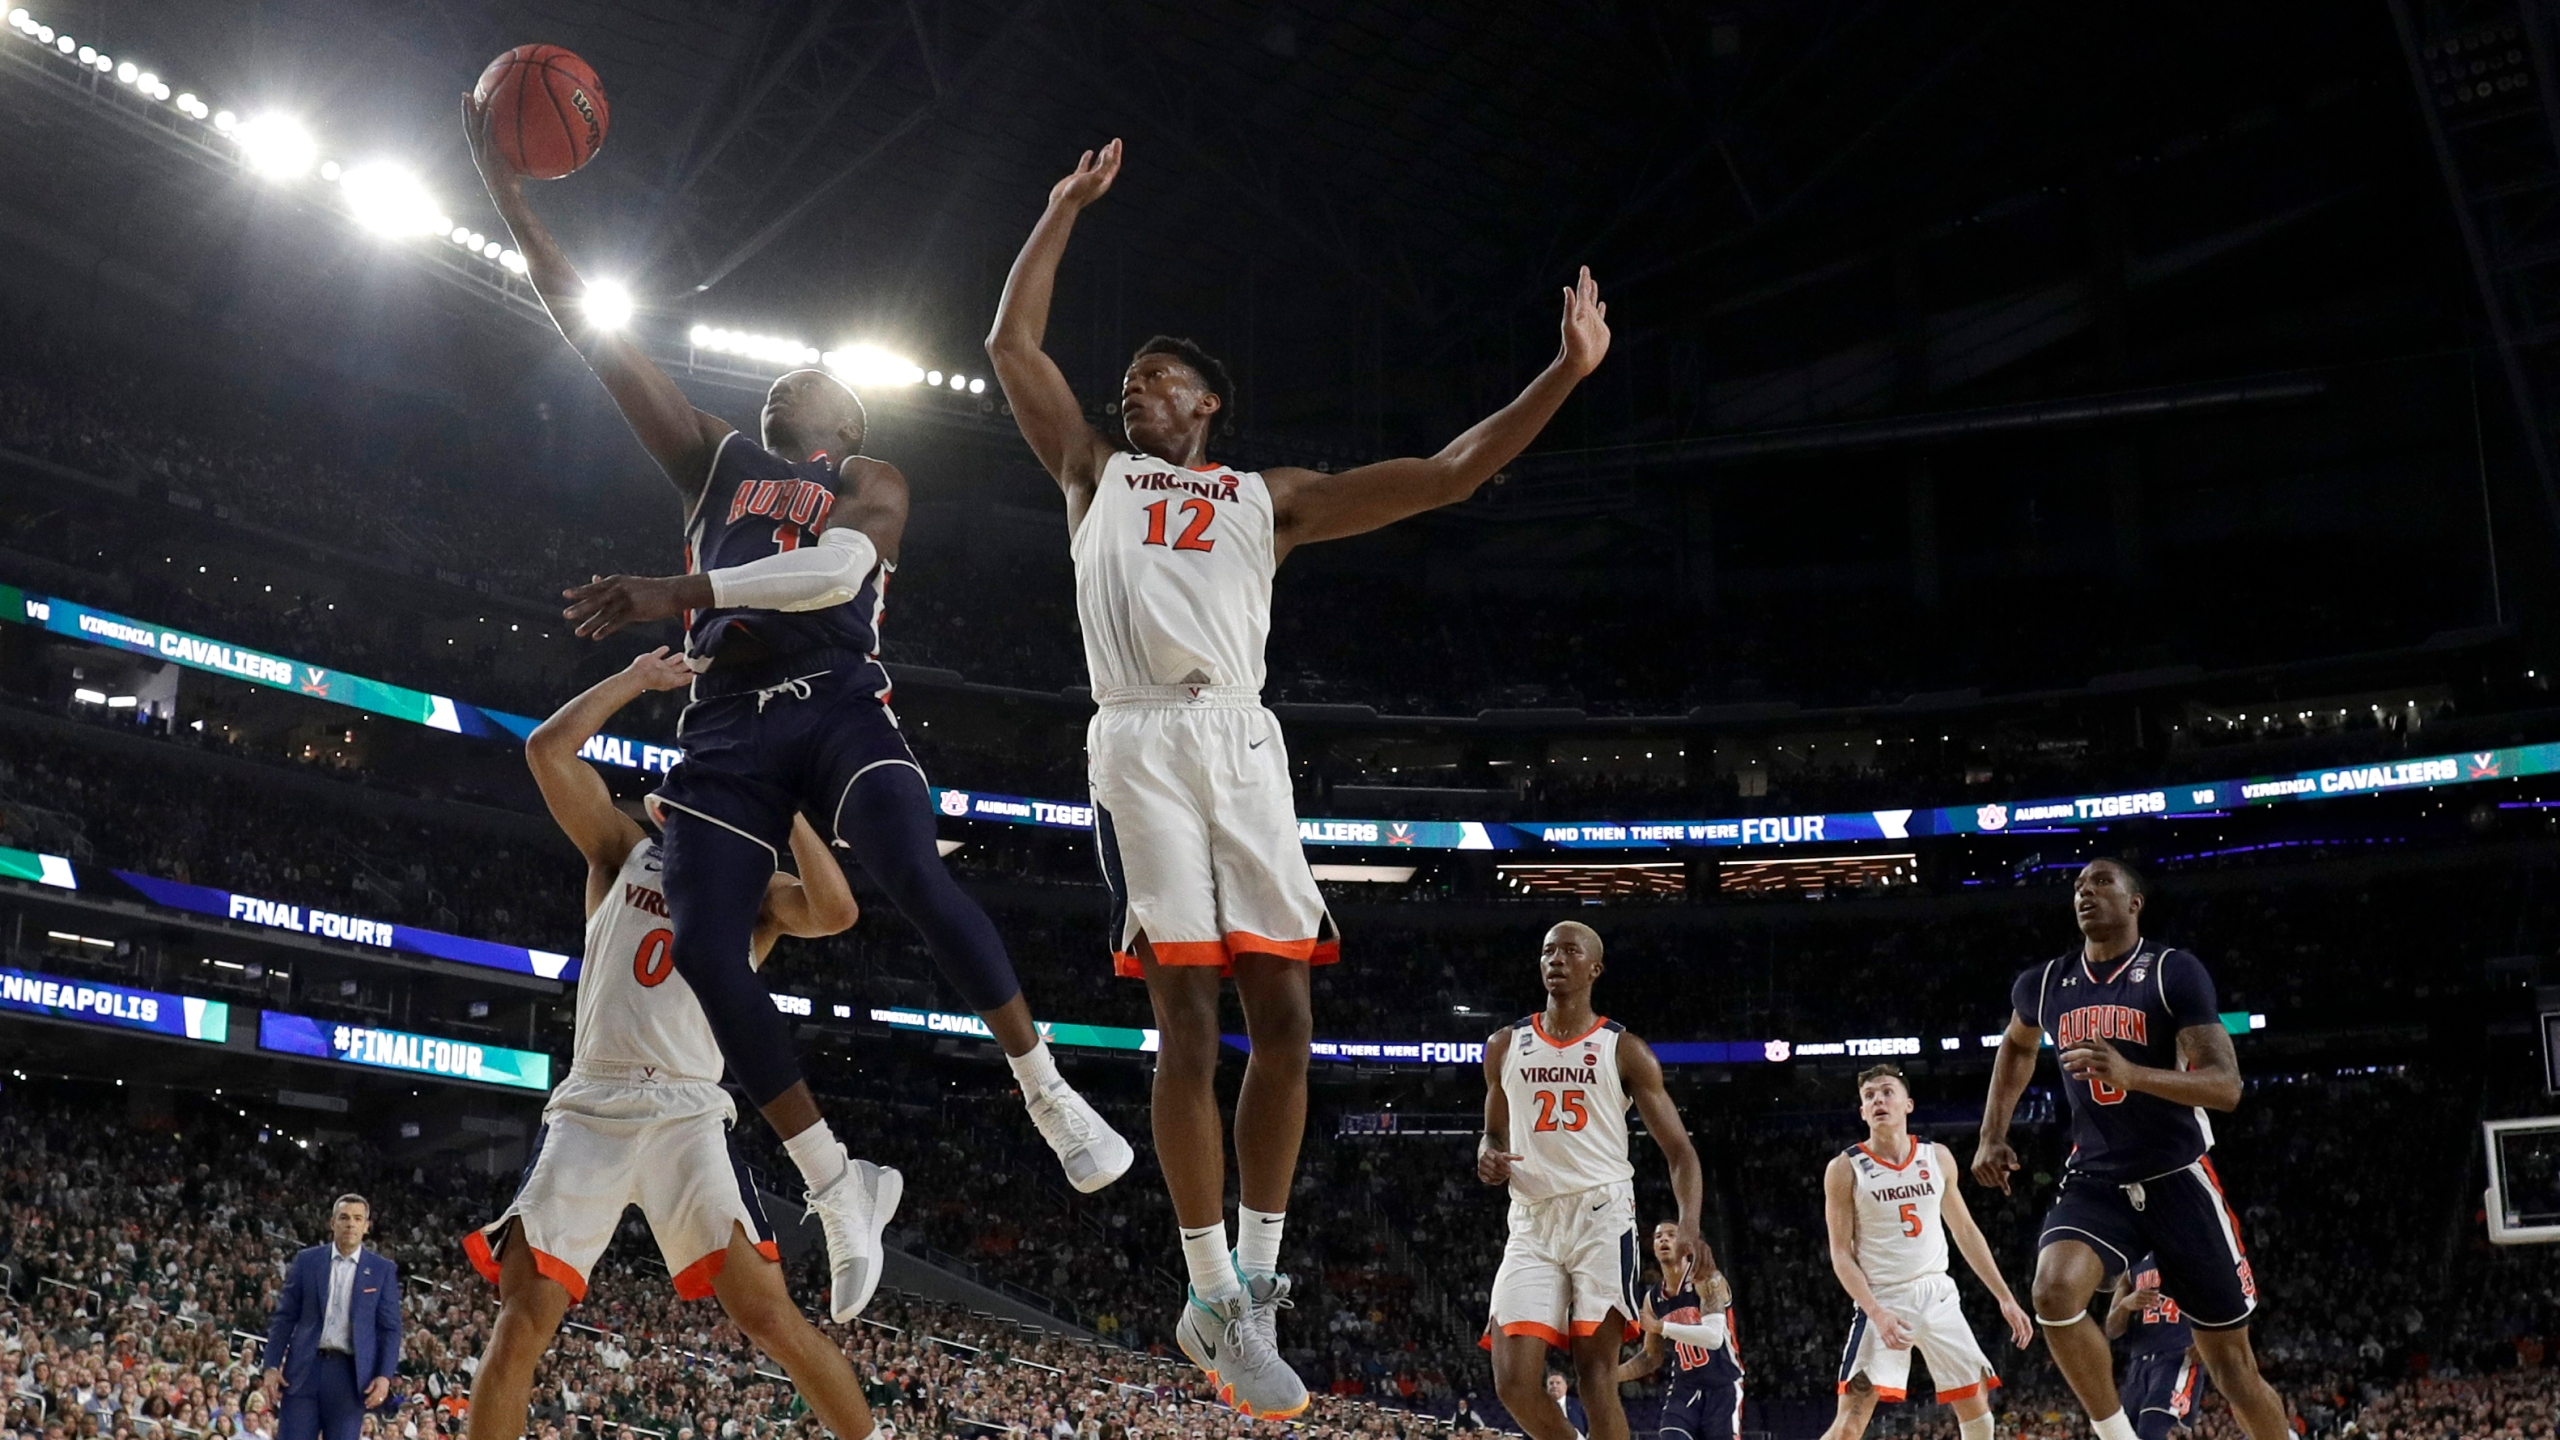 Final_Four_Auburn_Virginia_Basketball_07359-159532.jpg03854127